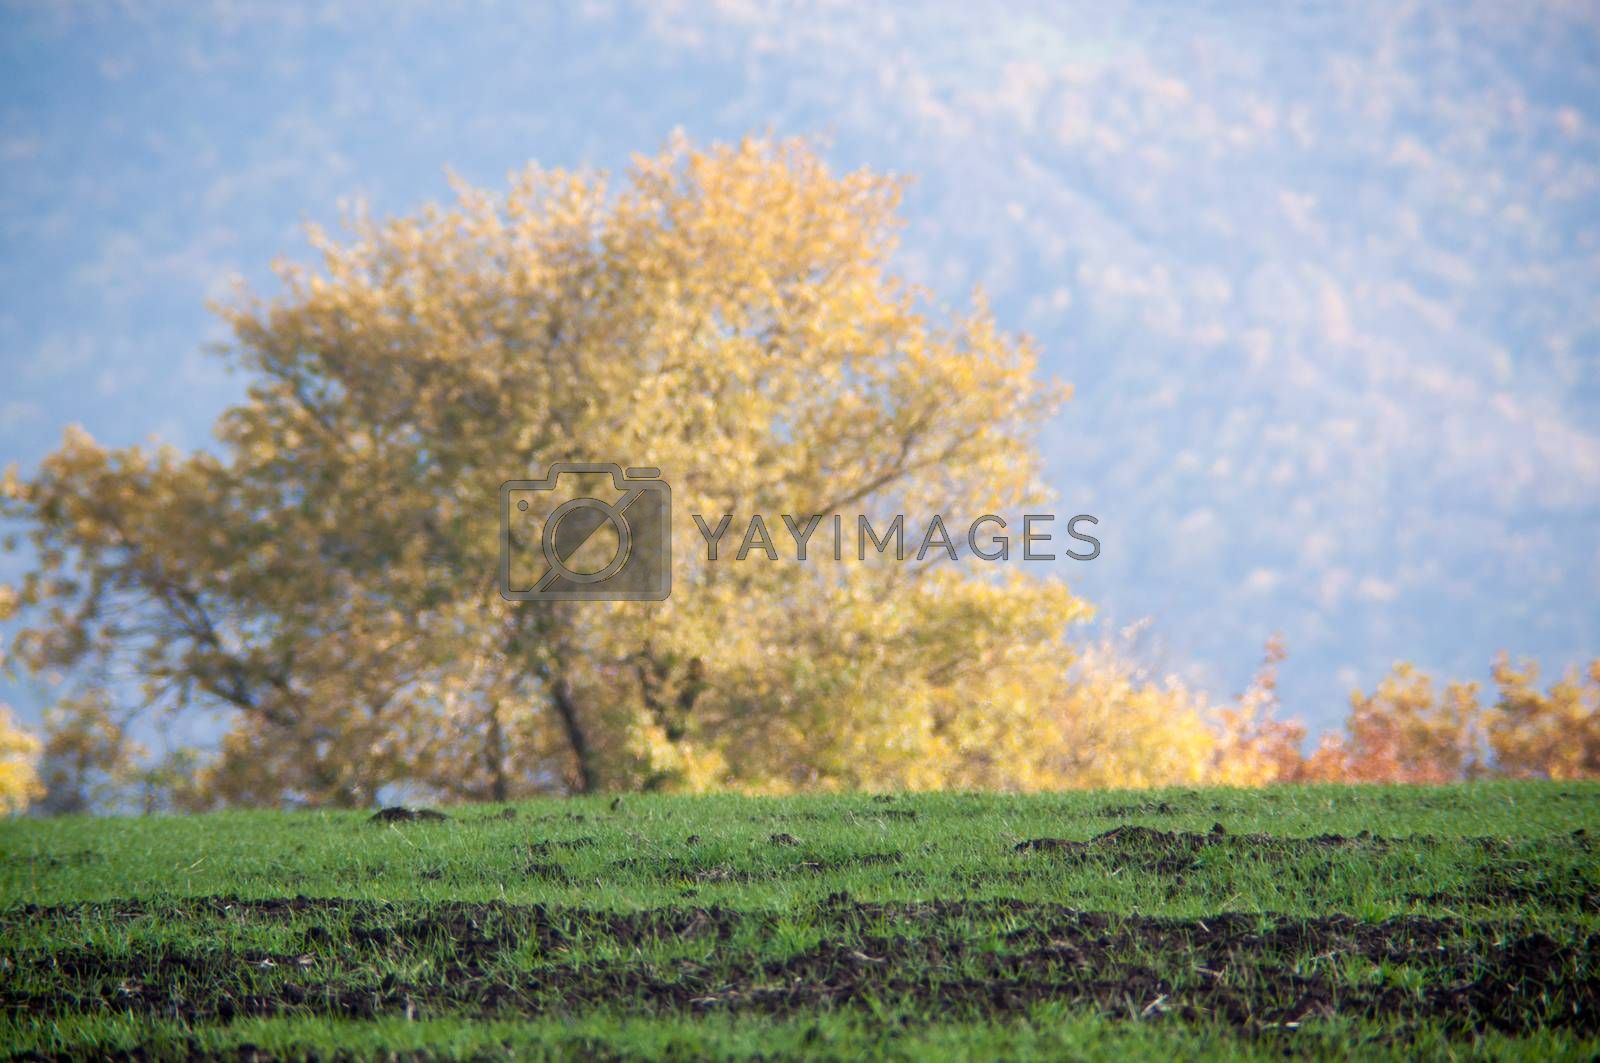 Majestic autumn trees glowing by sunlight. Red and yellow autumn leaves. Dramatic scene. Azerbaijan. Selective focus